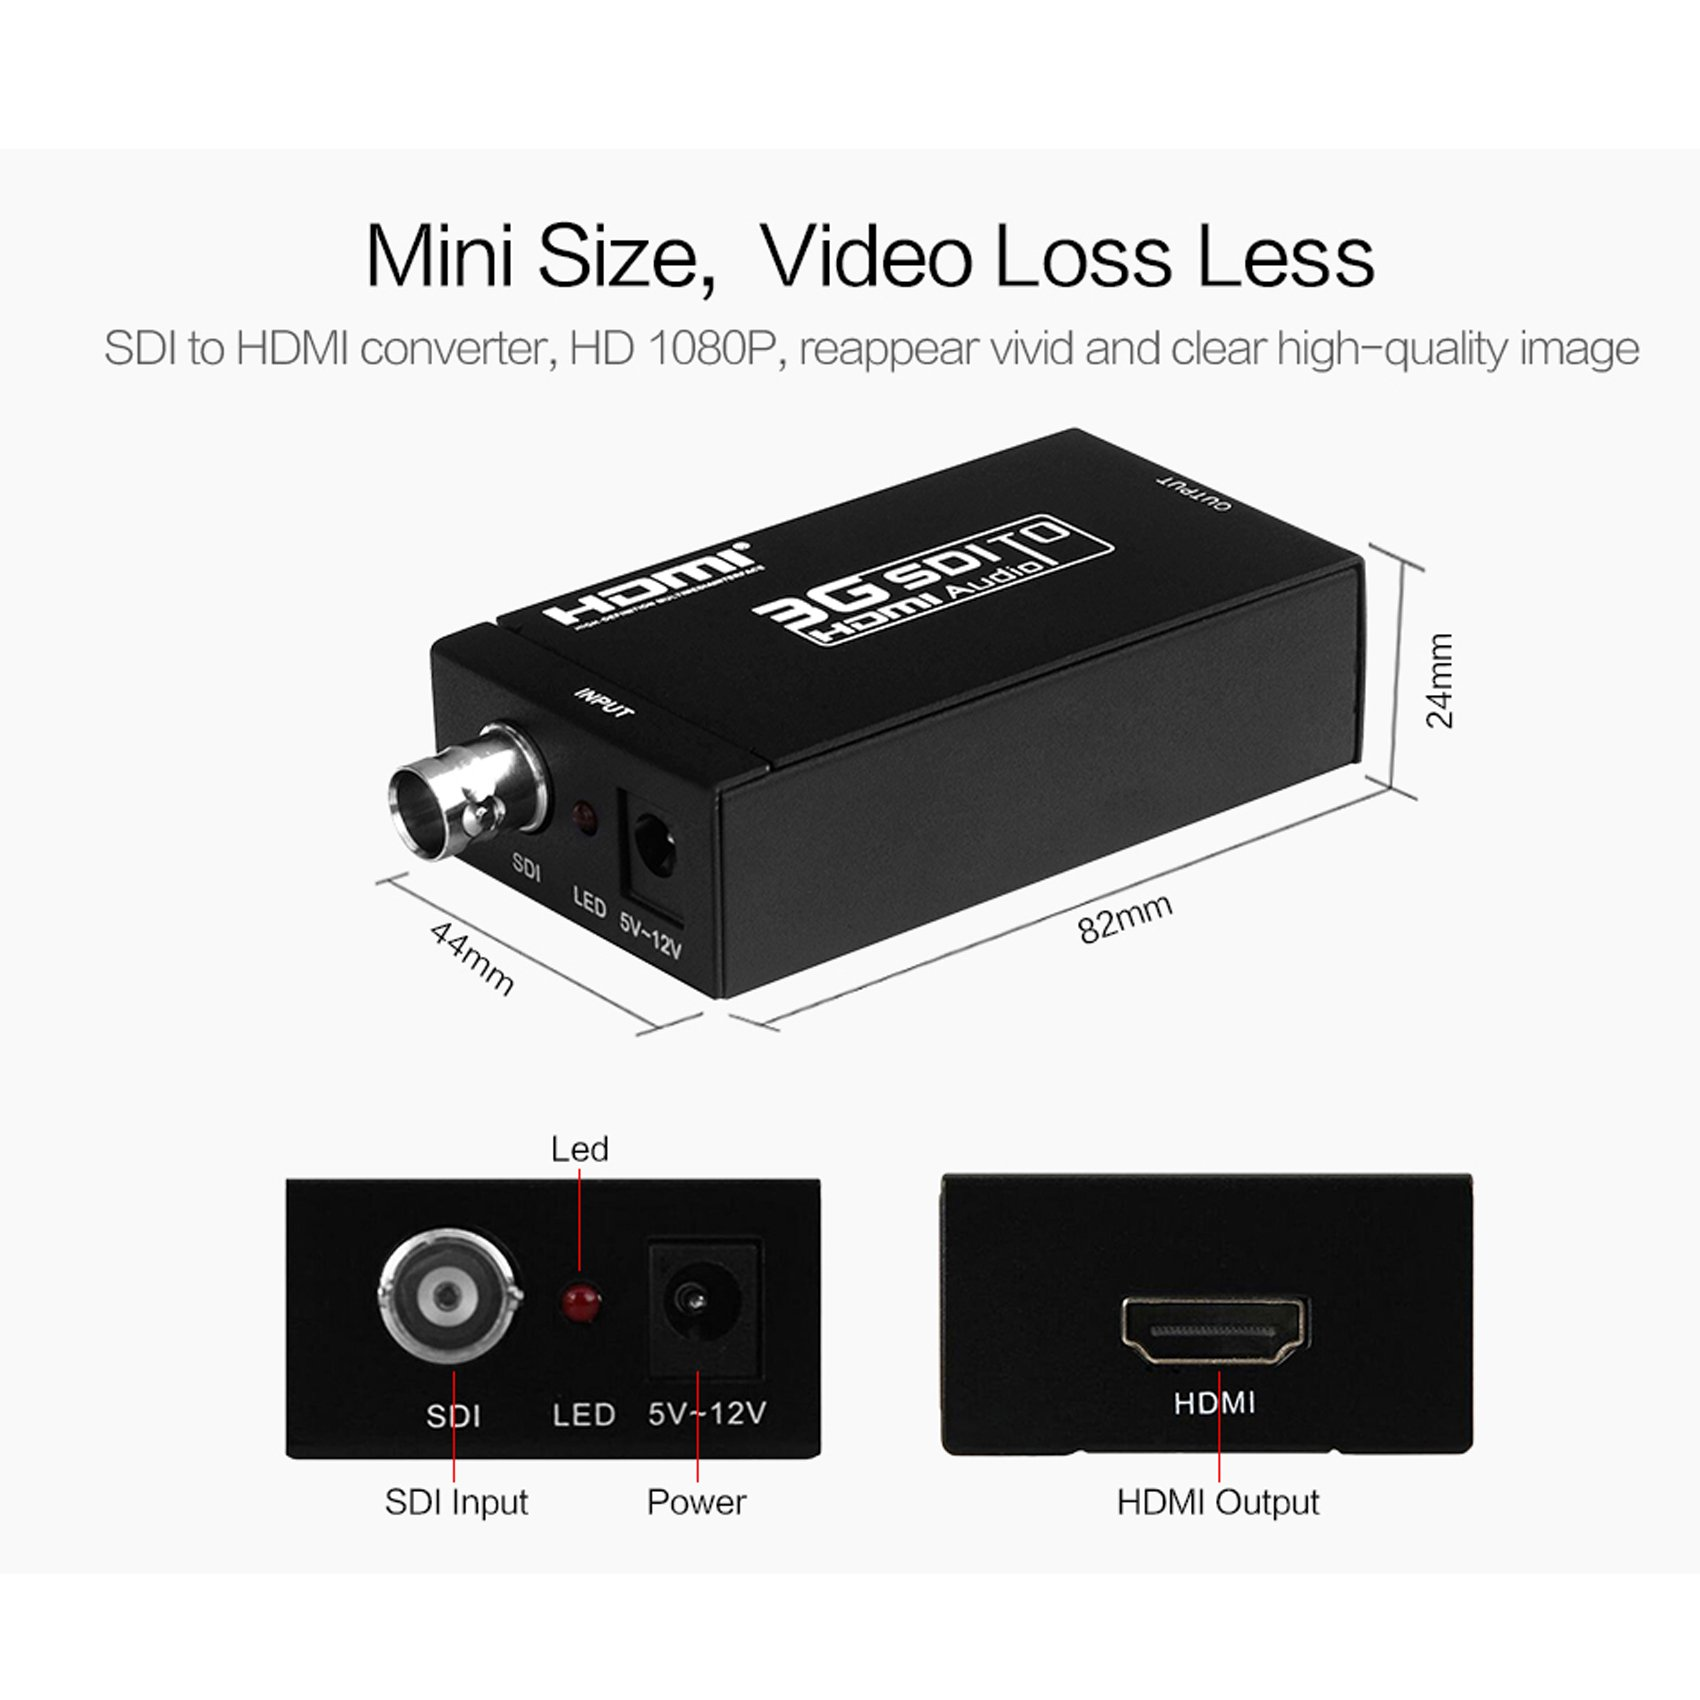 Basicolor SDI to HDMI Converter Mini 3G SDI HDMI Adapter with BNC Coaxical Support Full HD 1080p SD-SDI/HD-SDI/3G-SDI to HDMI Adapter Mini HD Video Convert for Camera PC Home Theater (Black) by Basicolor (Image #2)